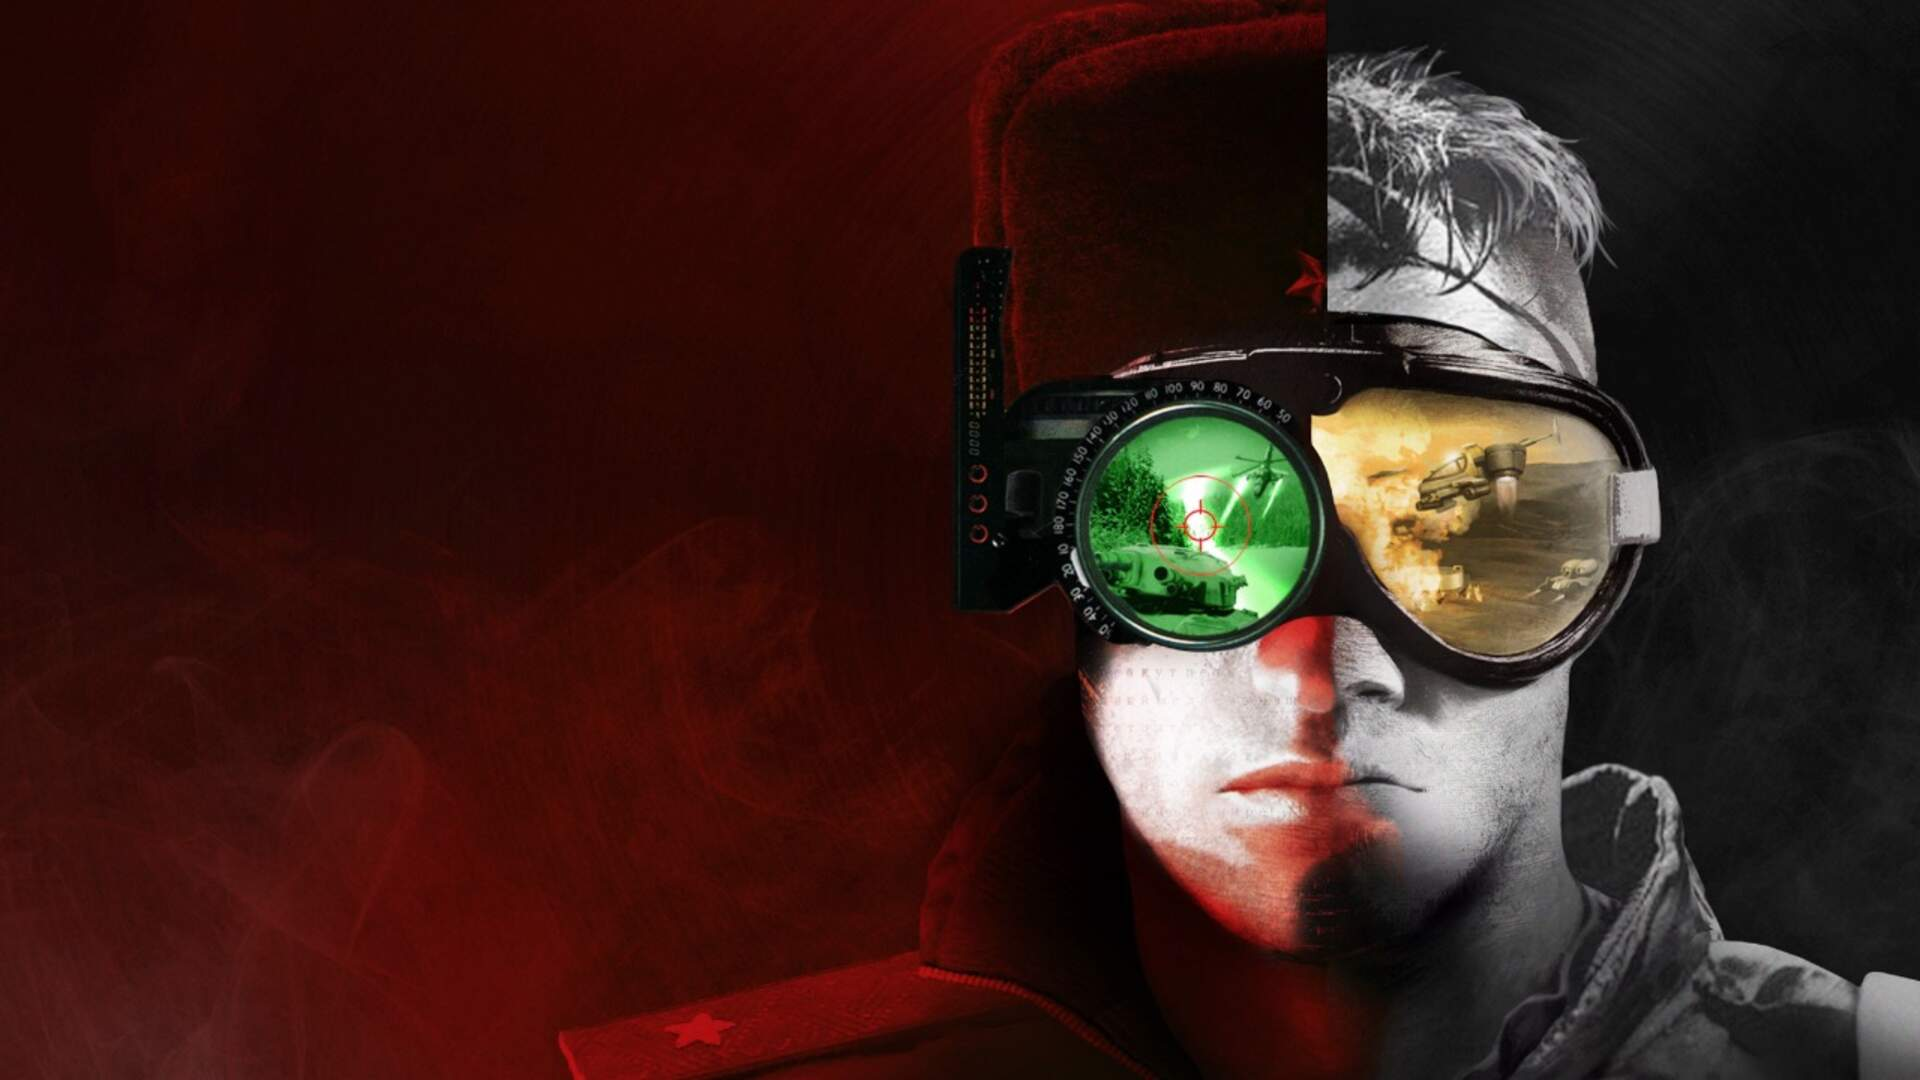 Command & Conquer Remastered Finally Has a Release Date